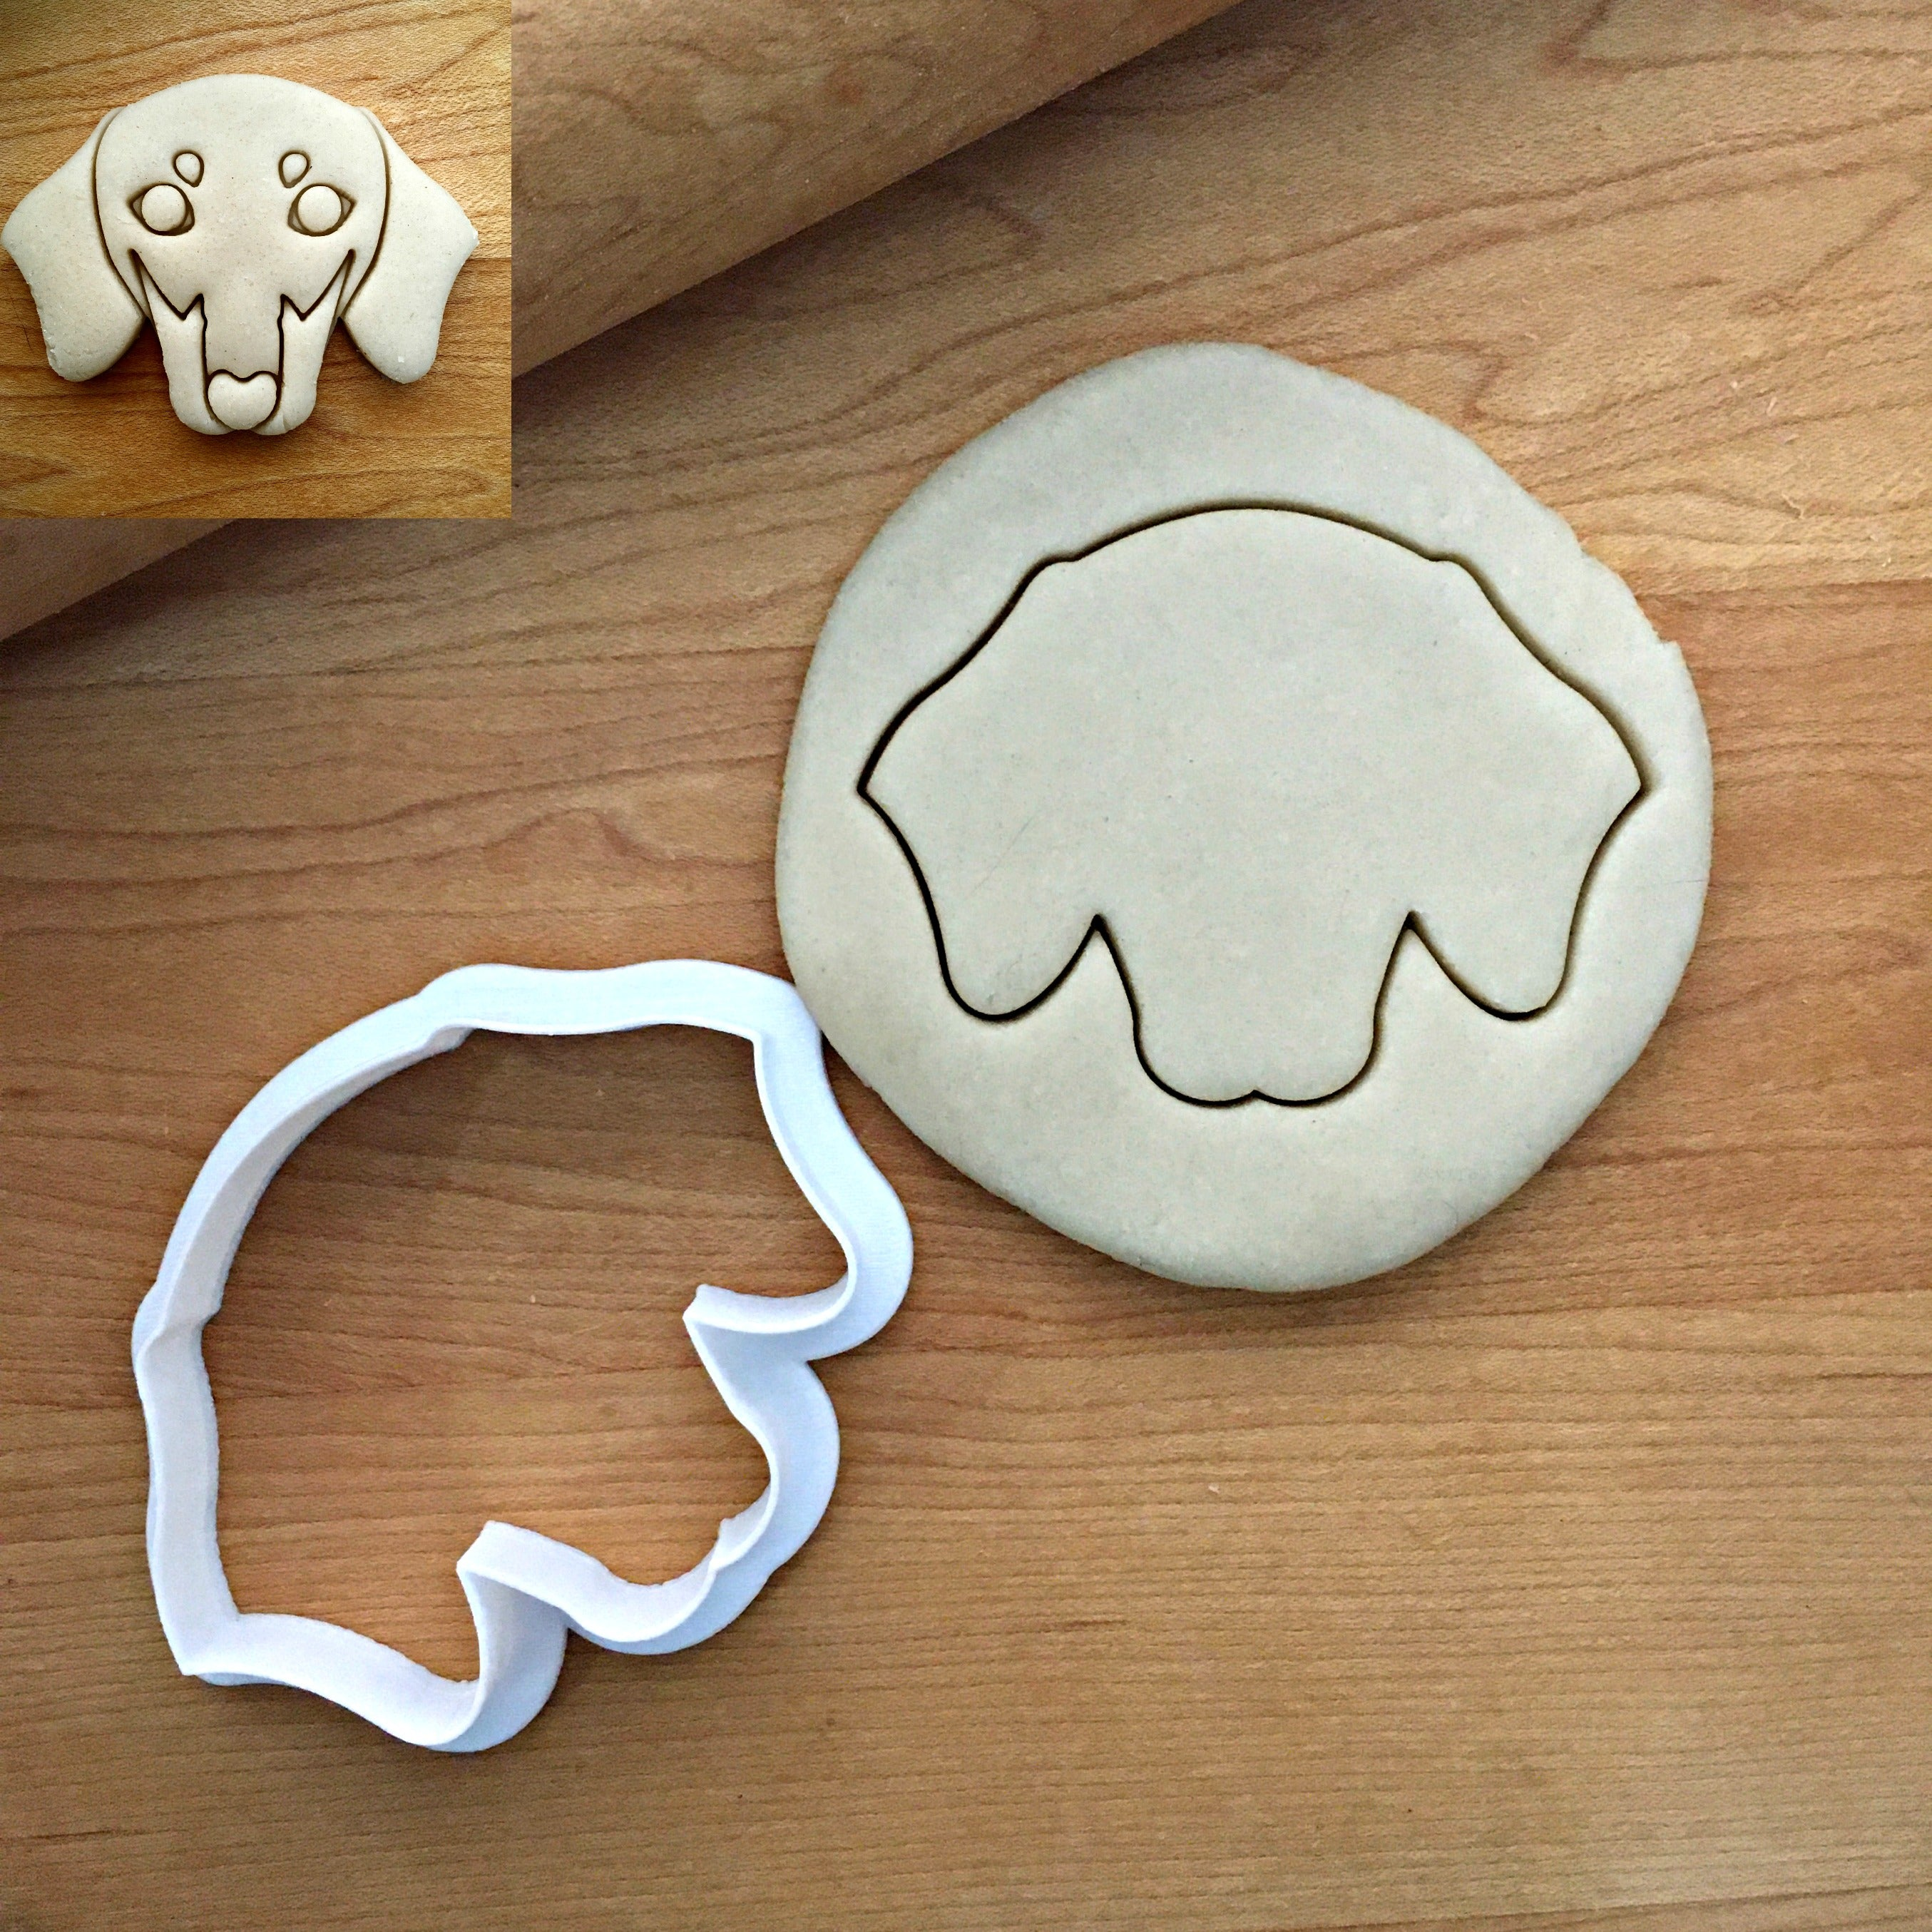 Dachshund/Wiener Dog Cookie Cutter/Dishwasher Safe